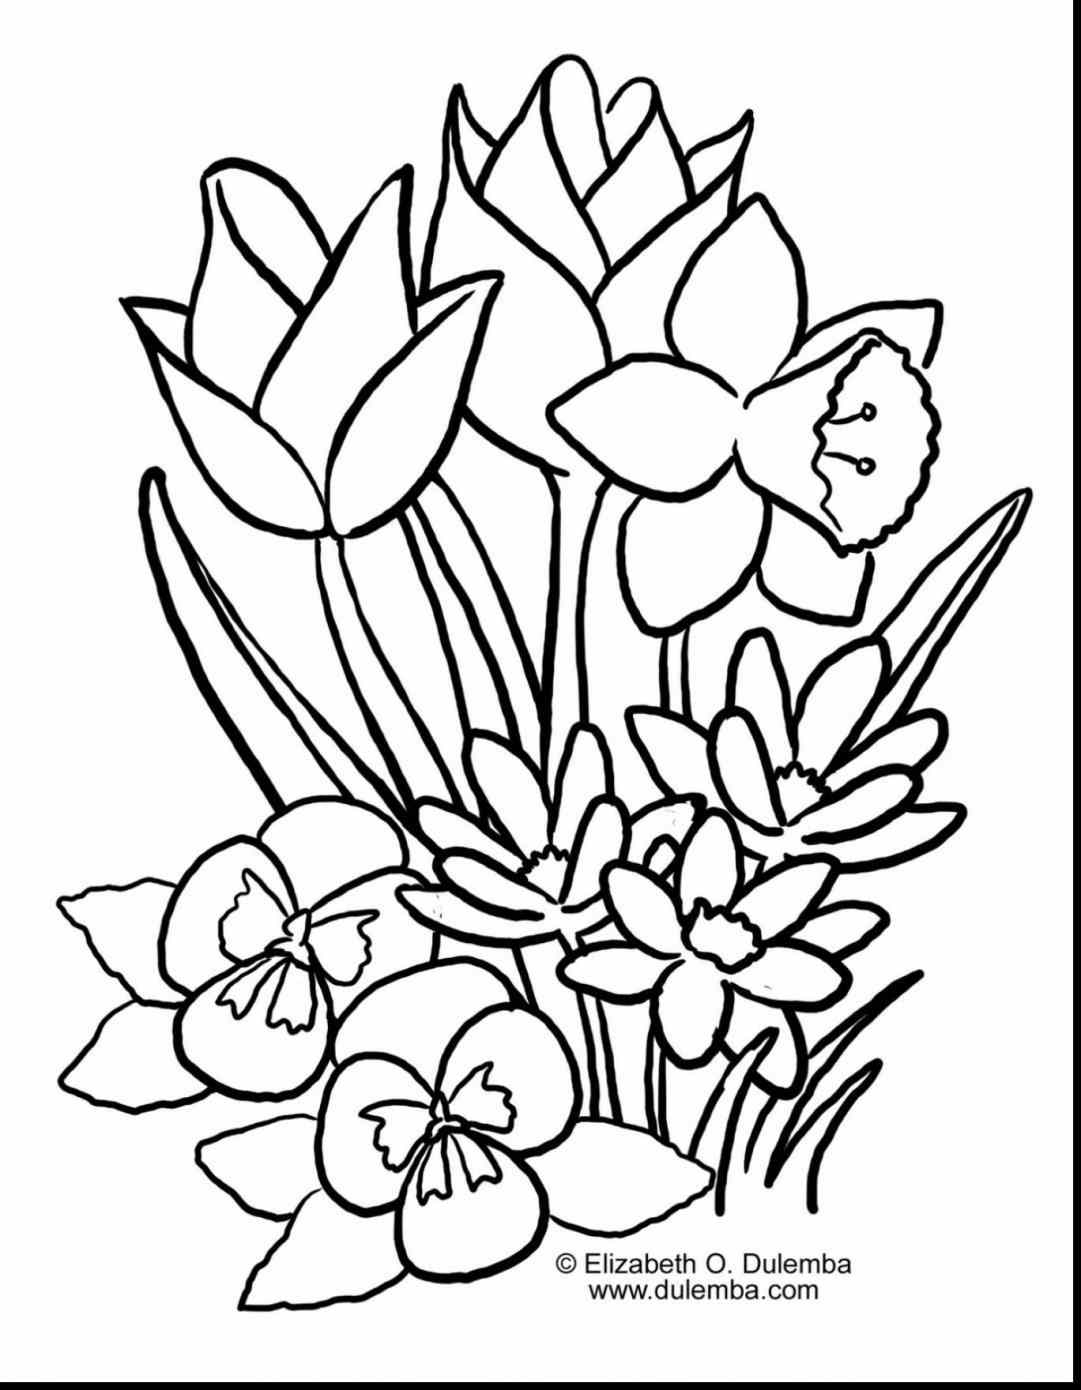 1081x1390 Drawing Ideas Coloring Pages S Spectacular Sping Easter Displays